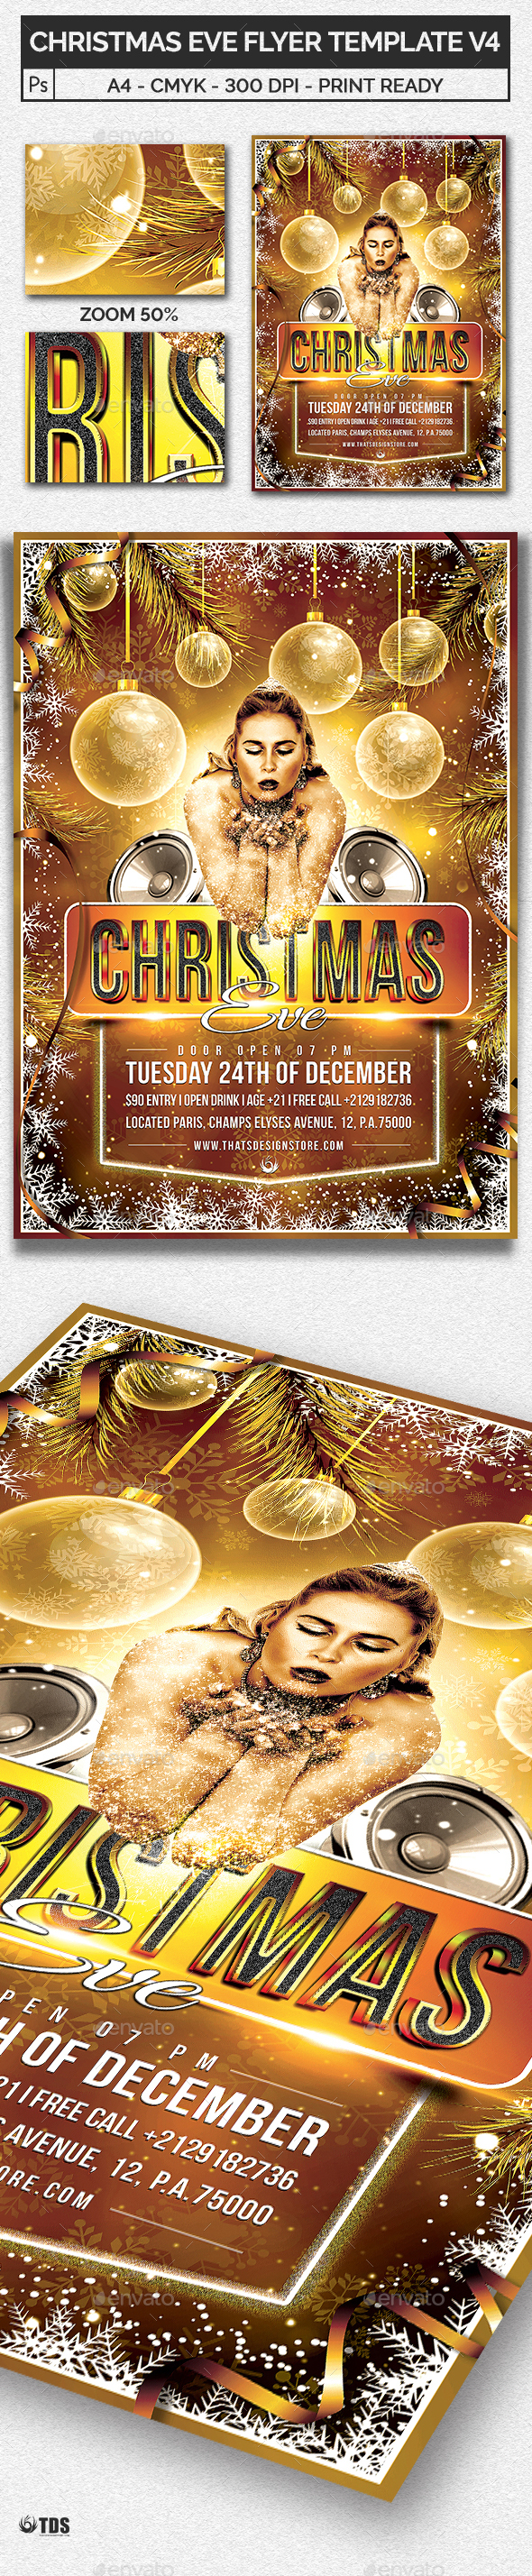 Christmas Eve Flyer Template V4 - Holidays Events